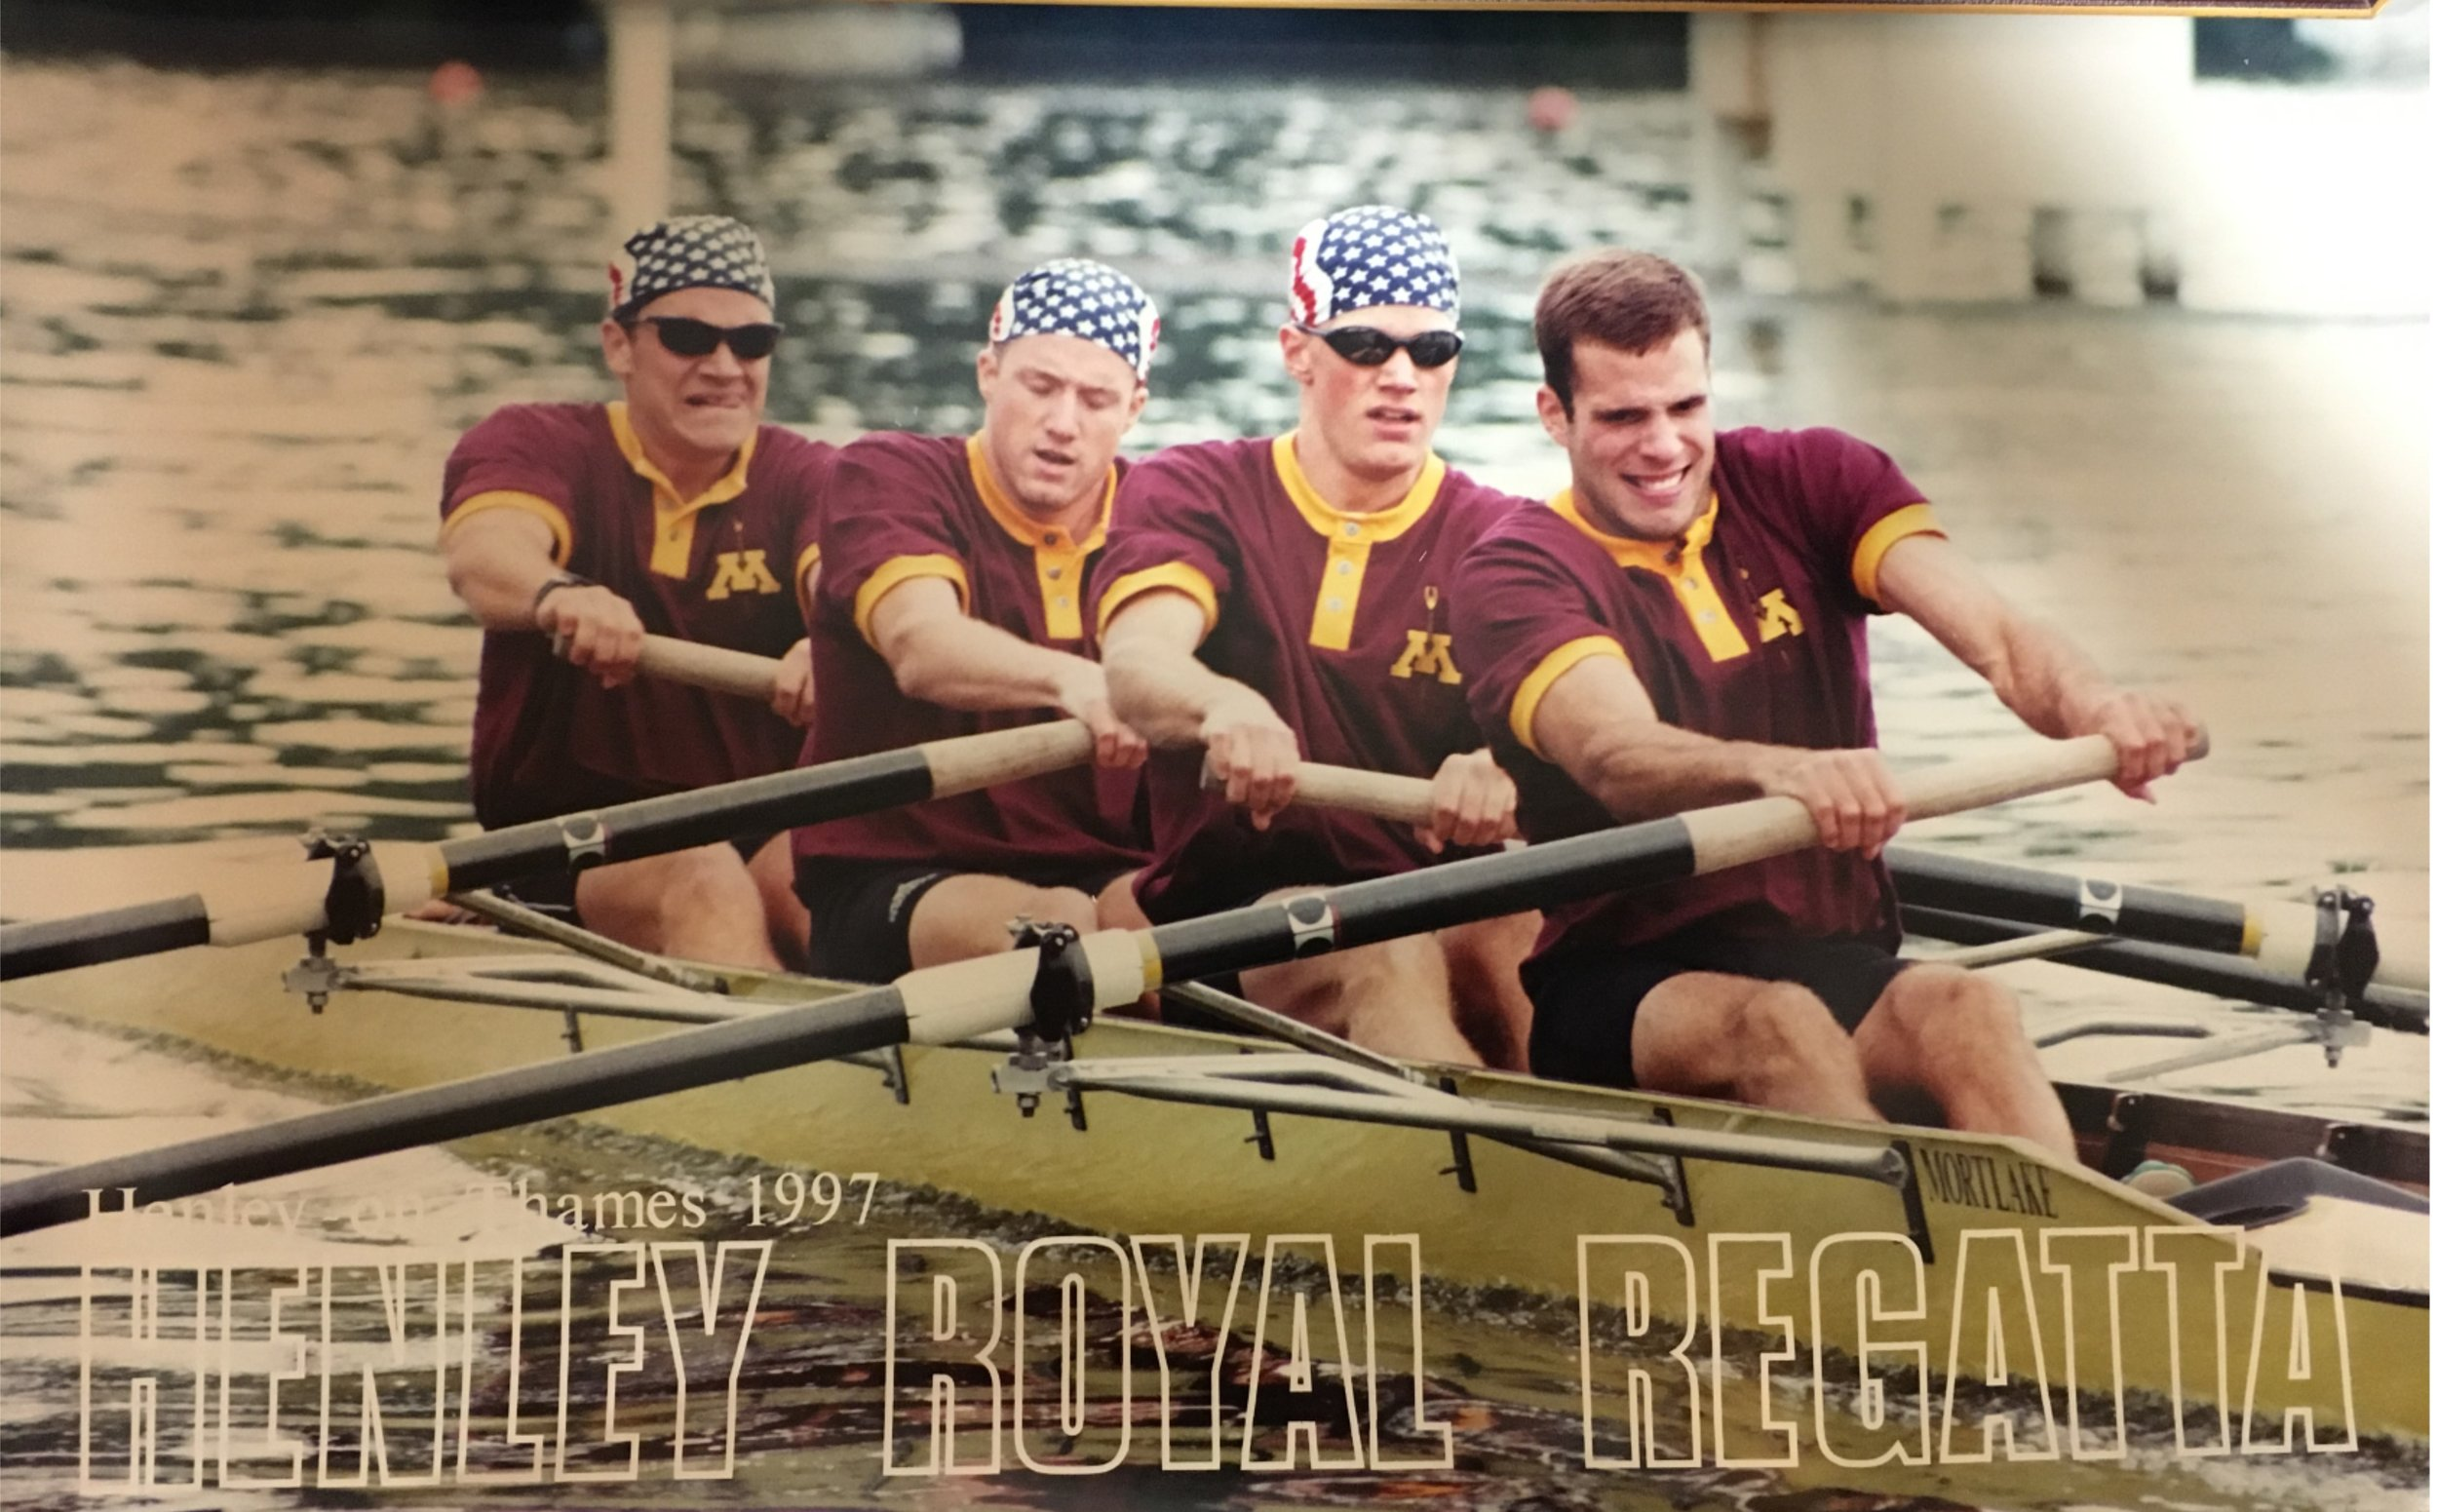 timeline - See chronological snapshots of 60 years of gopher excellence.